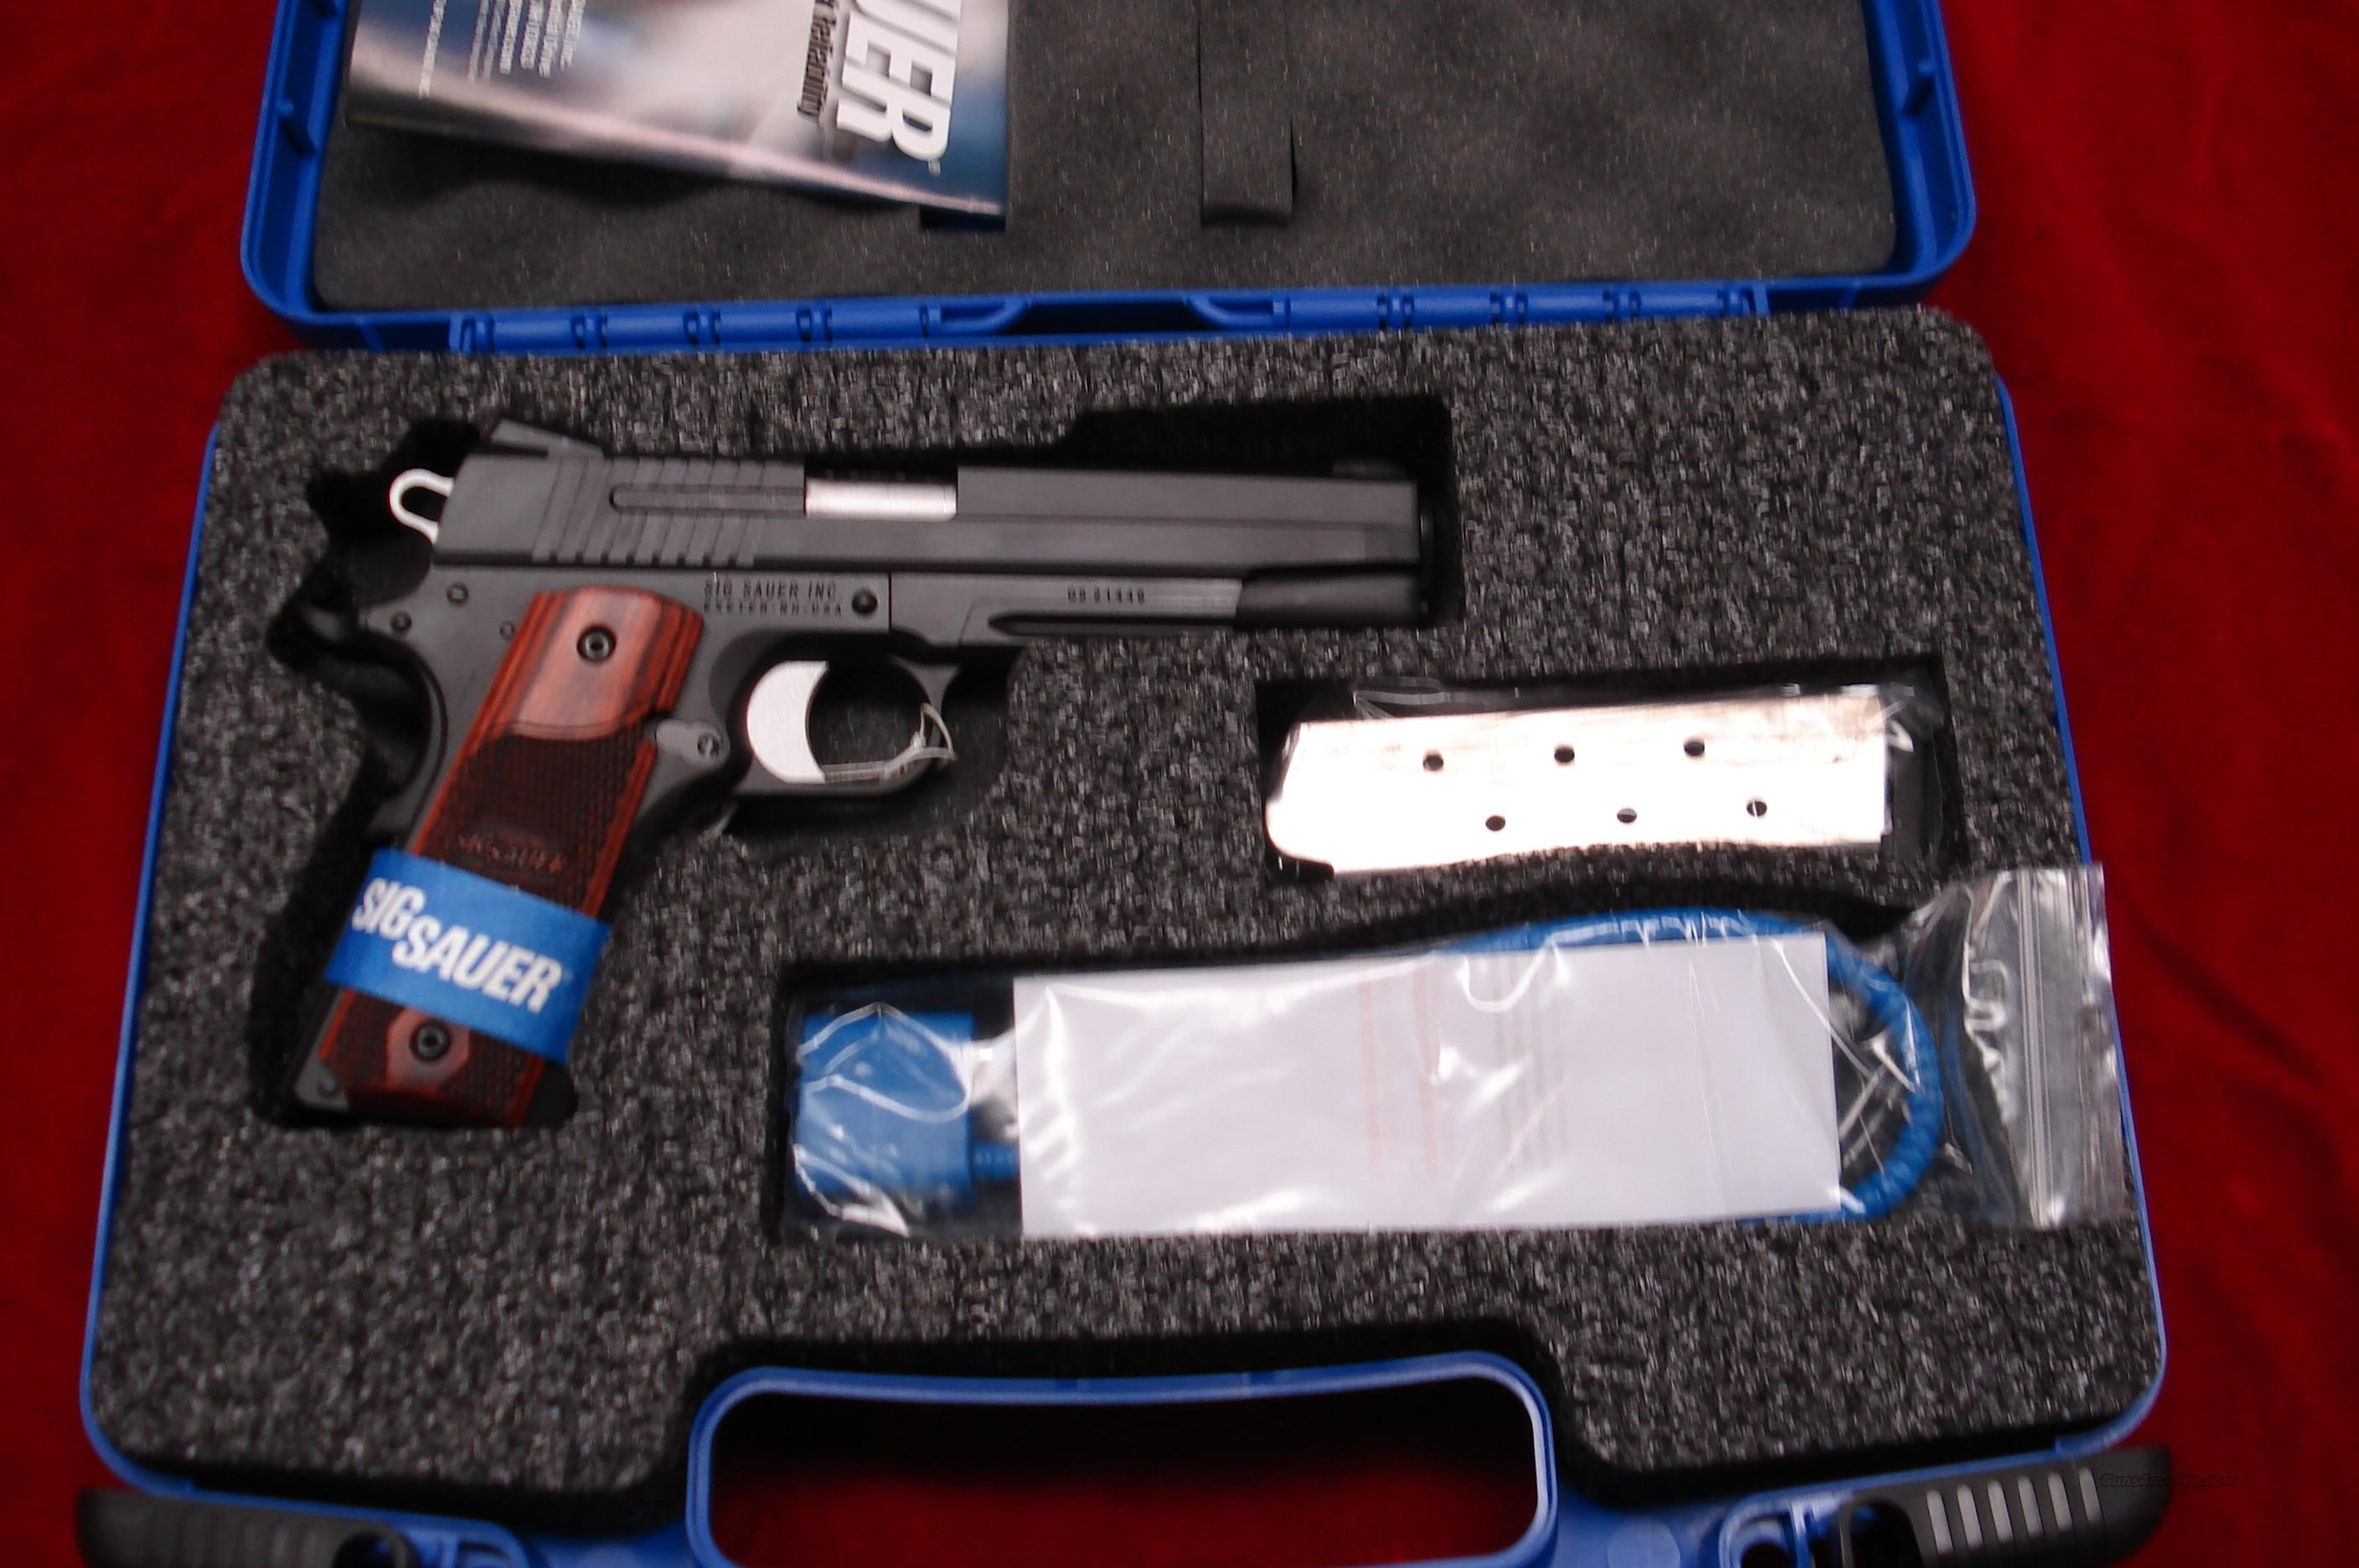 SIG SAUER 1911 WITH TAC RAIL AND NIGHT SIGHTS NEW   Guns > Pistols > Sig - Sauer/Sigarms Pistols > 1911